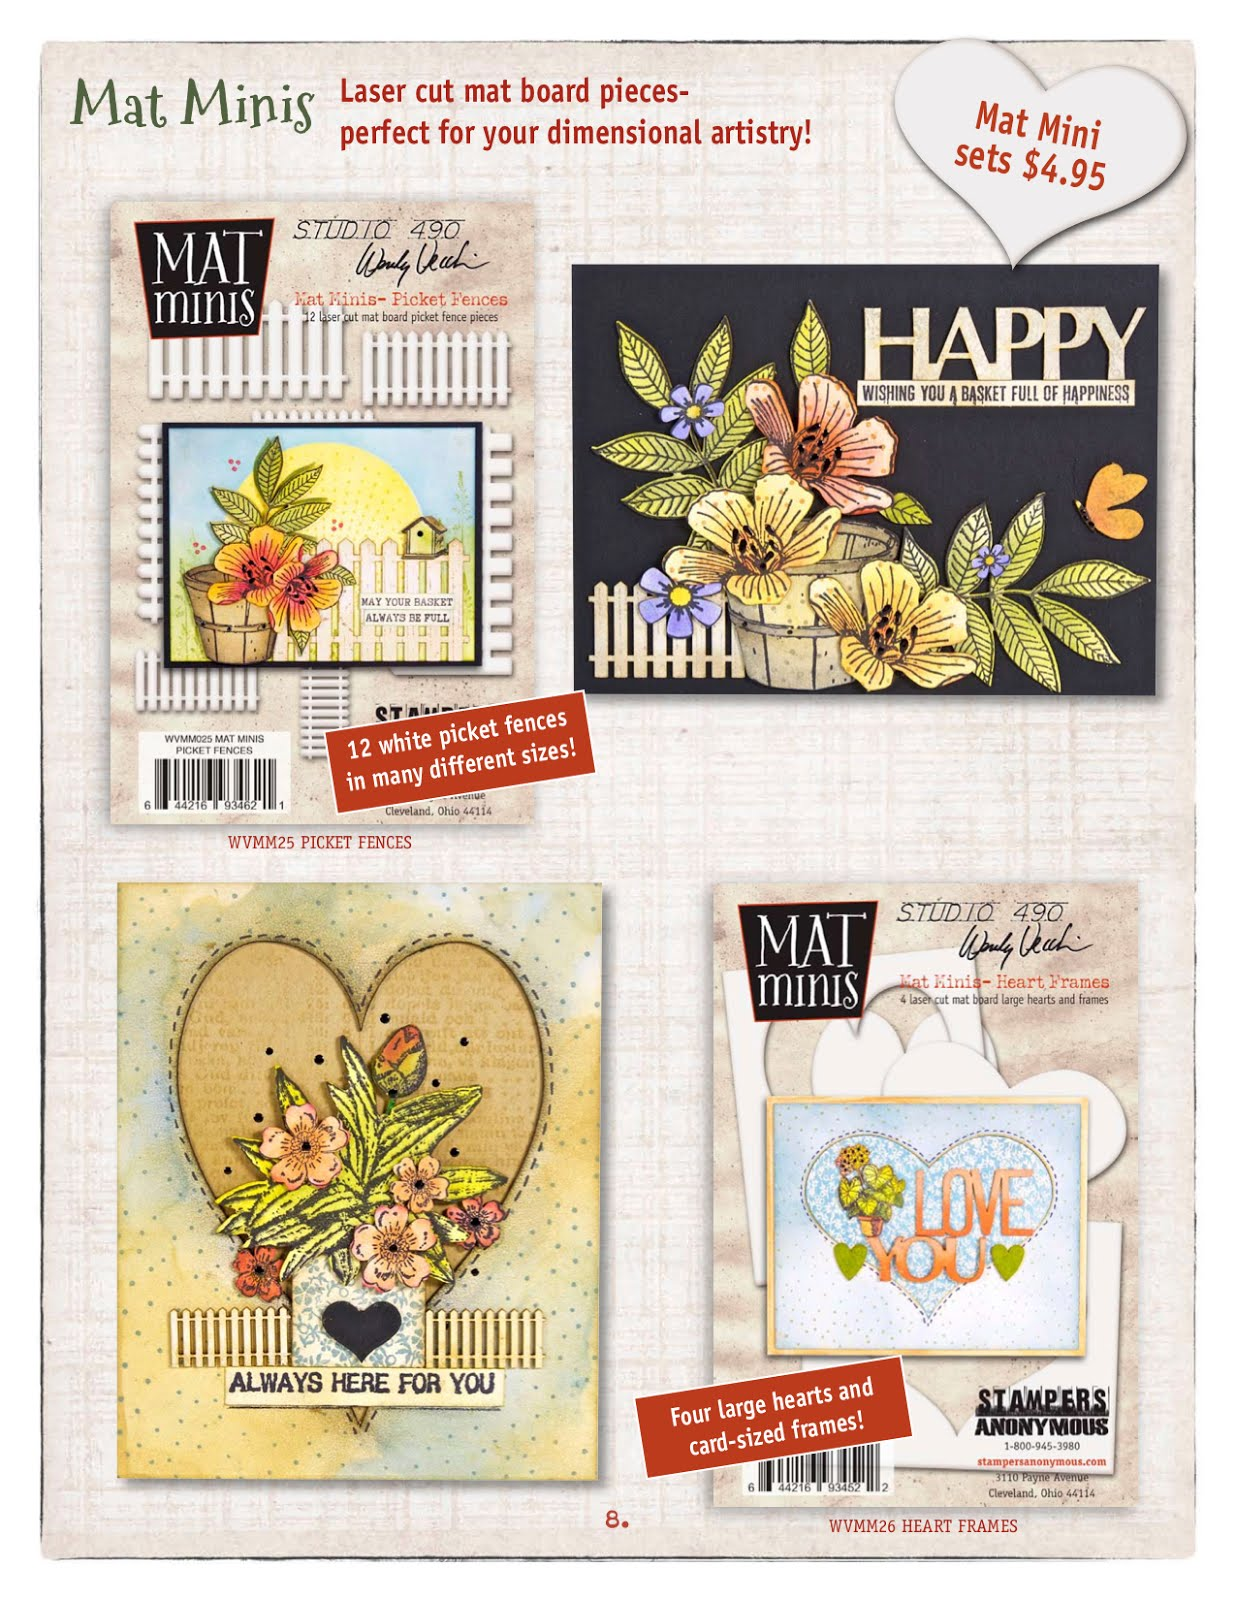 Studio 490: NEW STAMP/Stencil sets & mat minis from Stampers